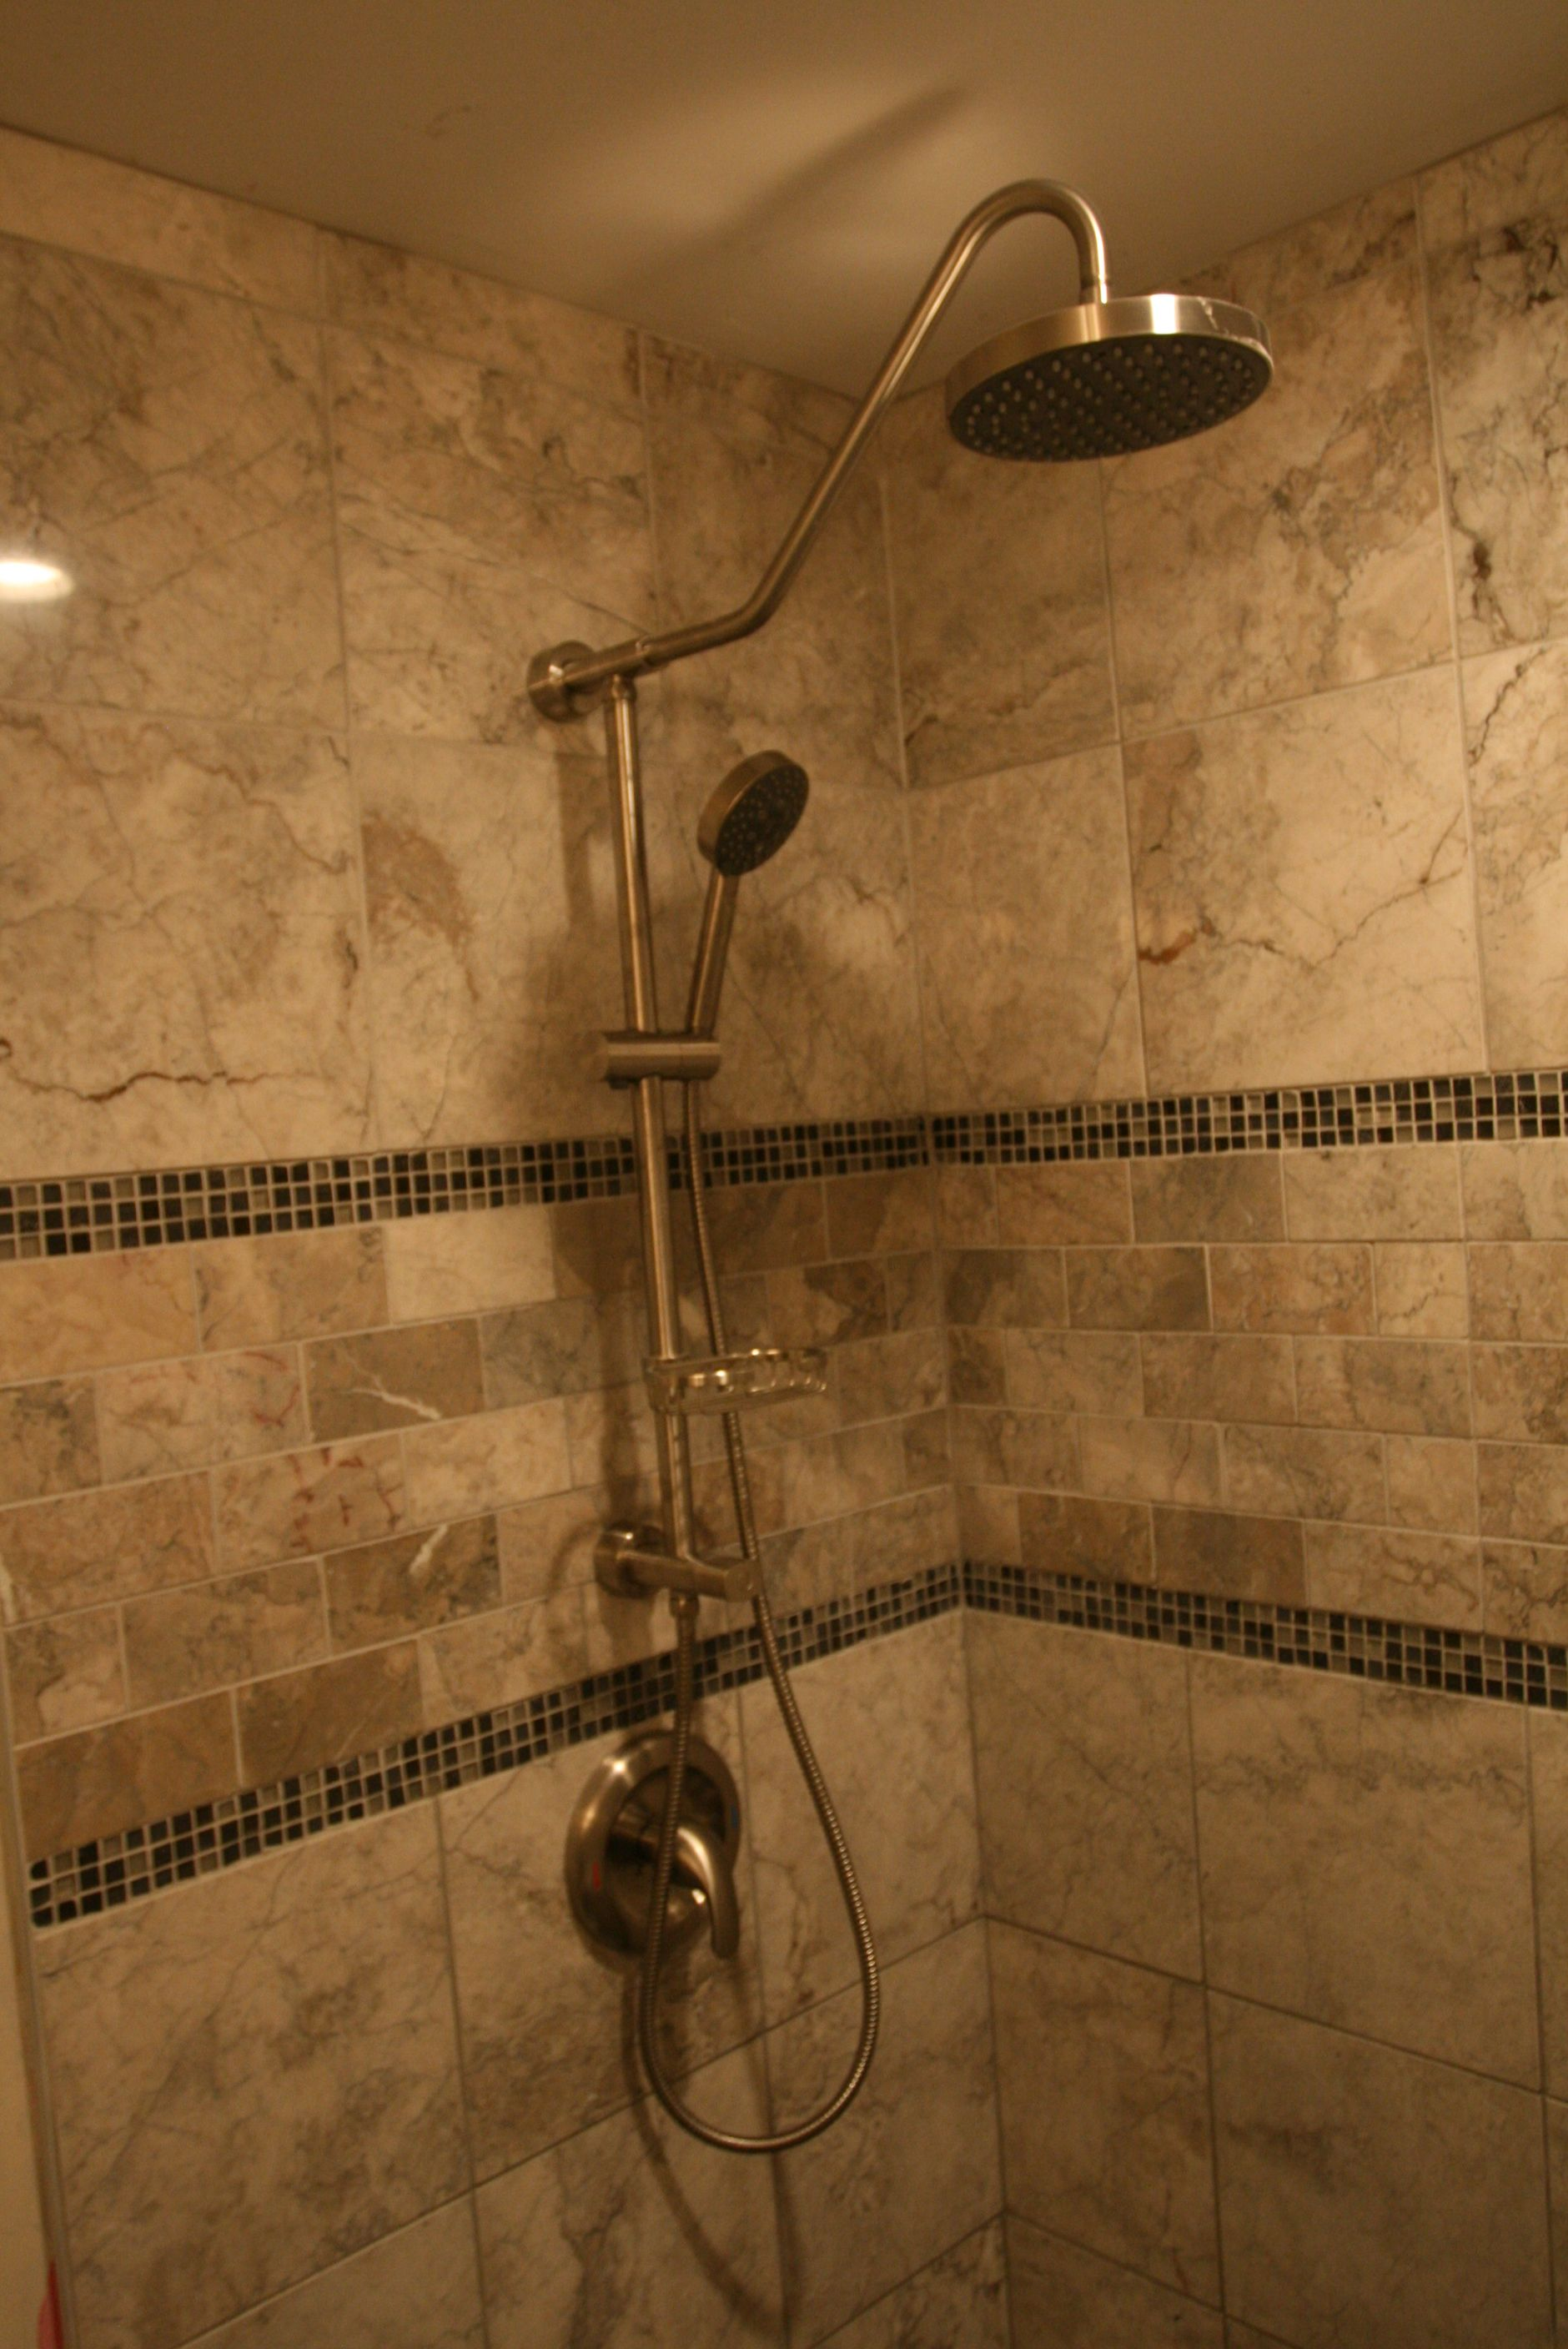 Nice Shower Fixture And Tile Coloring. PULSE ShowerSpas Kauai Shower System  Rubbed Oil Bronze.